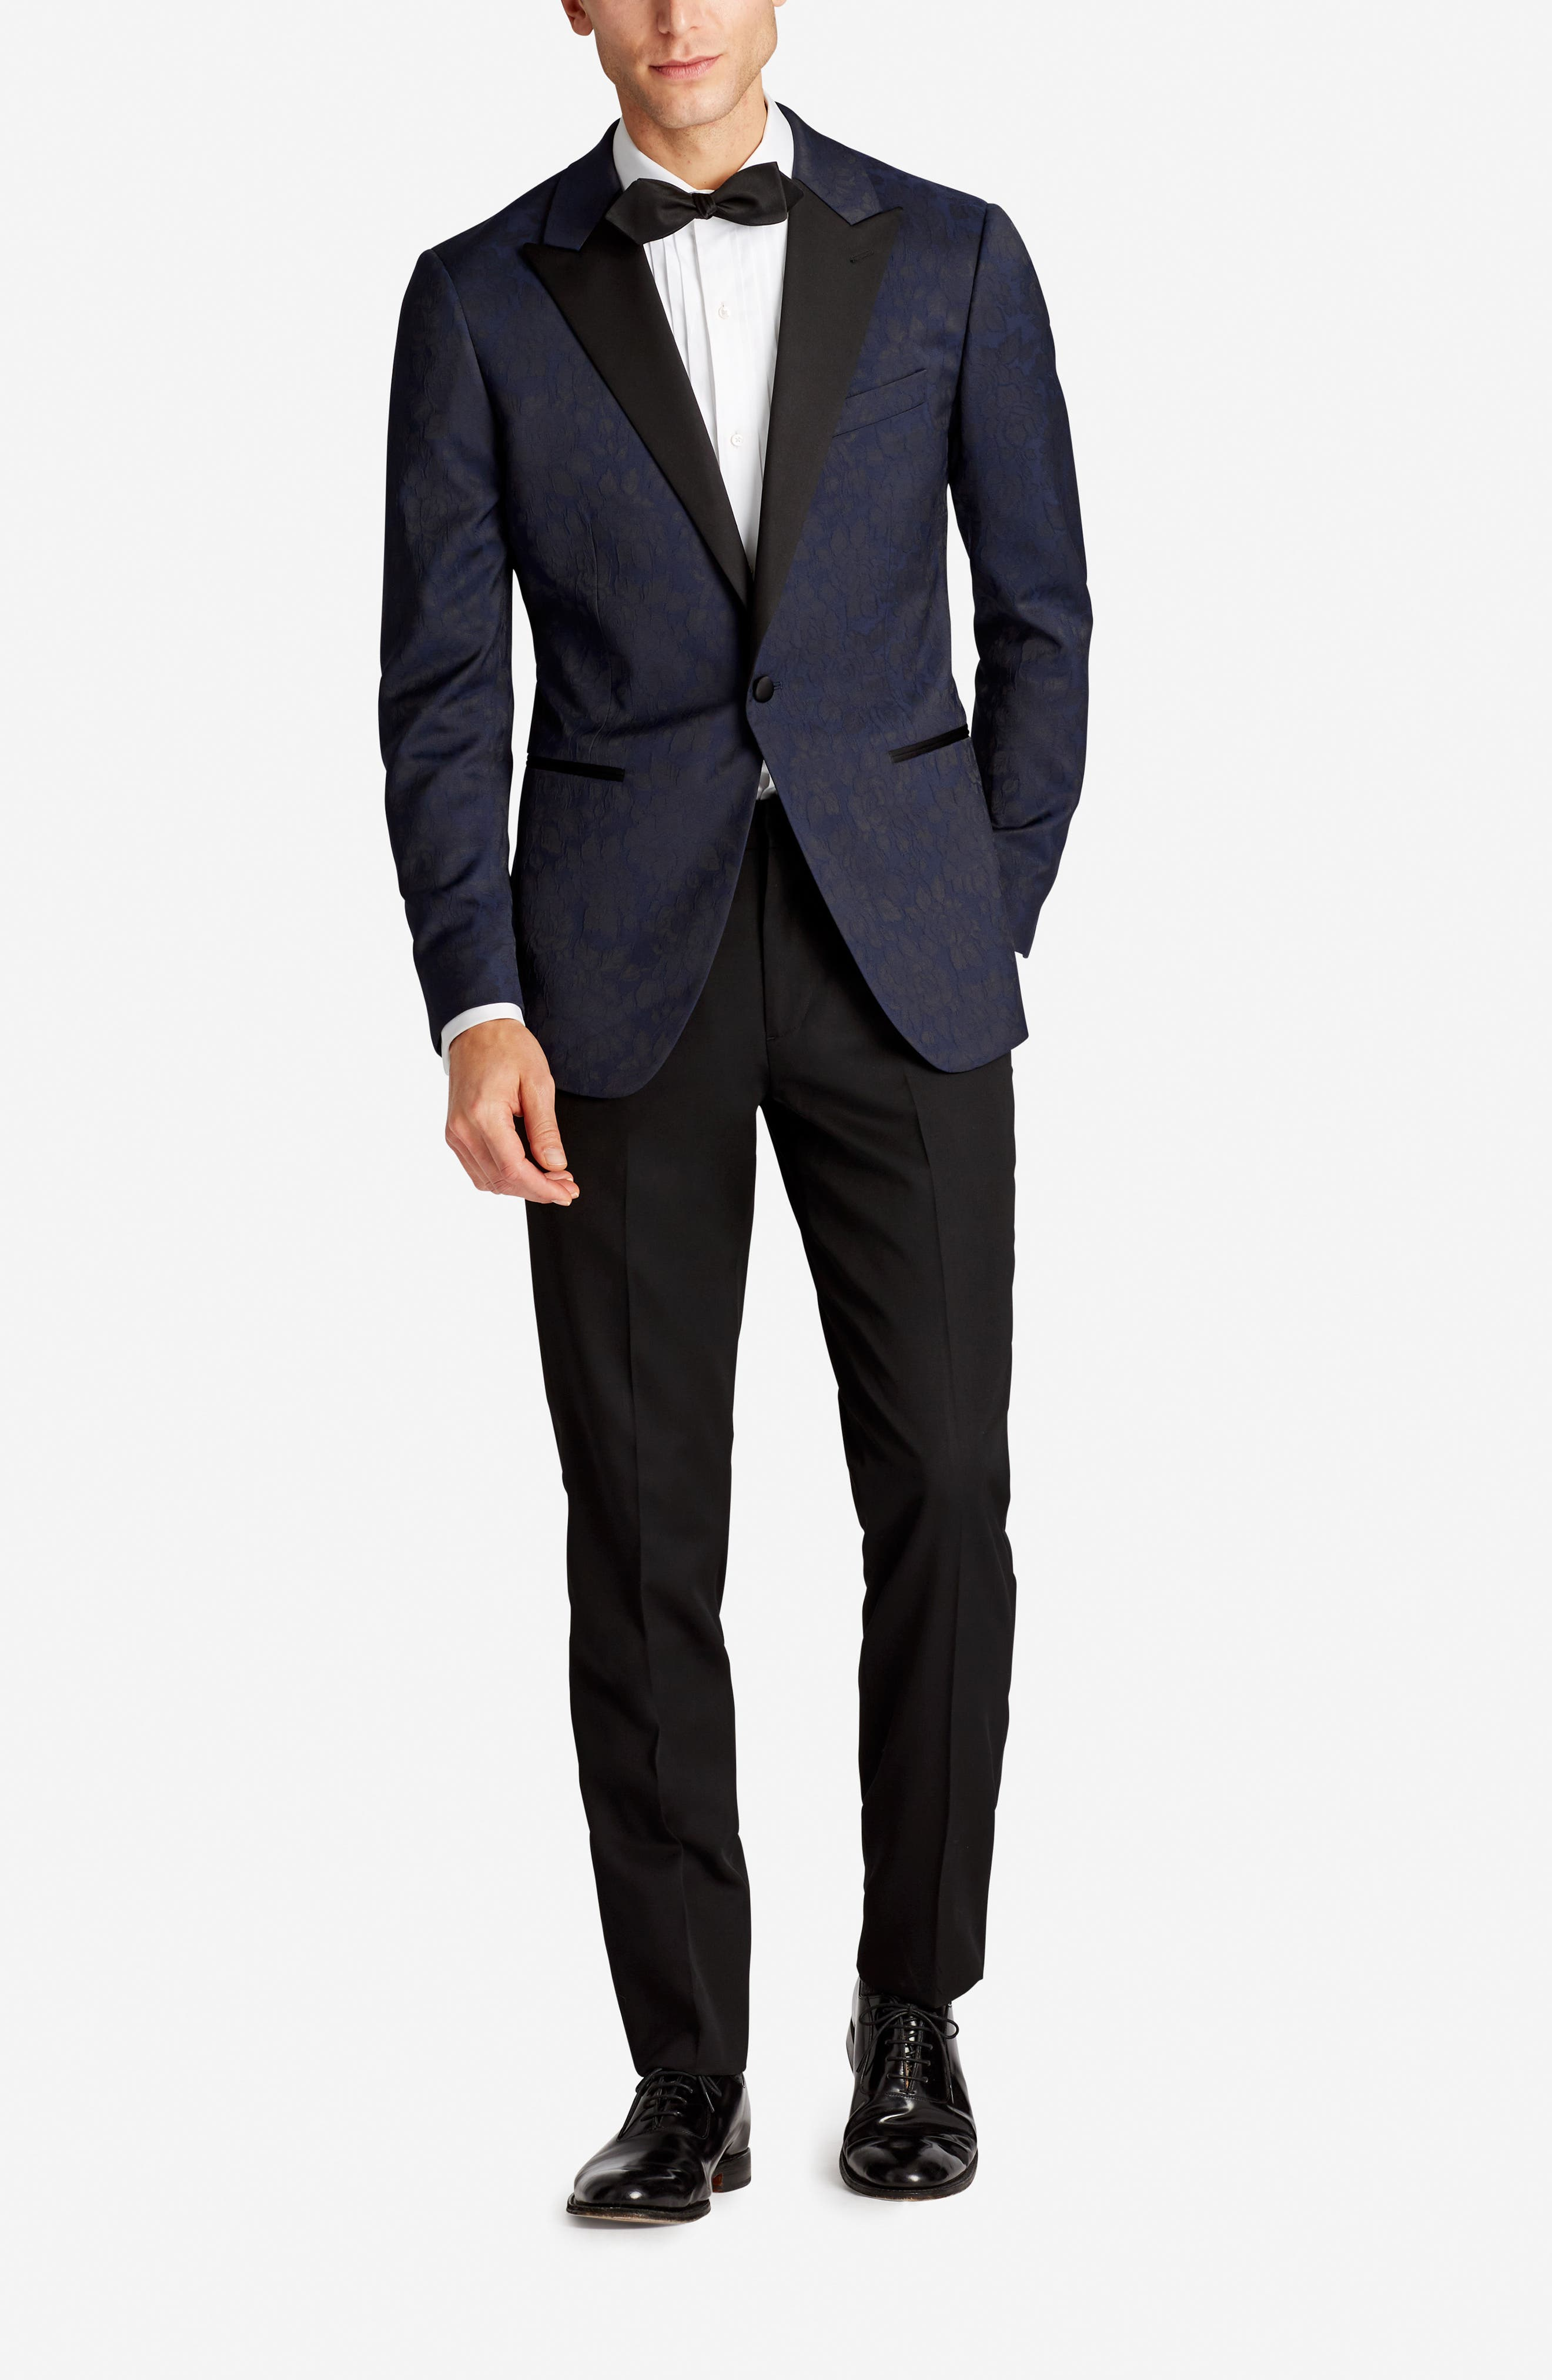 Capstone Slim Fit Stretch Dinner Jacket,                             Alternate thumbnail 5, color,                             Floral Jacquard